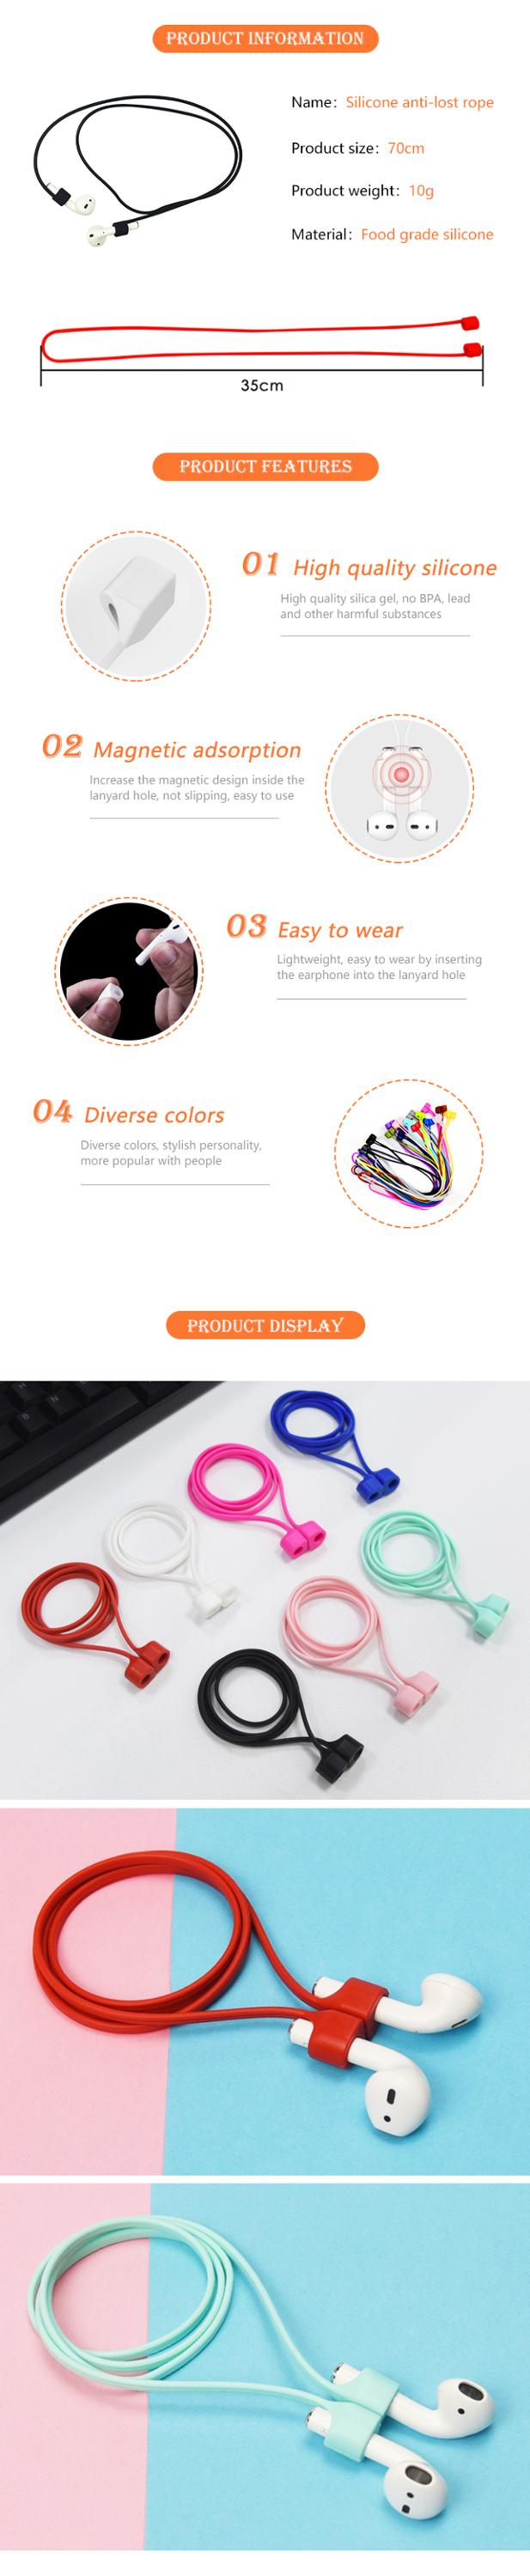 Factory Magnetic Strap Silicone Anti Lost String Rope for Wireless Earphone